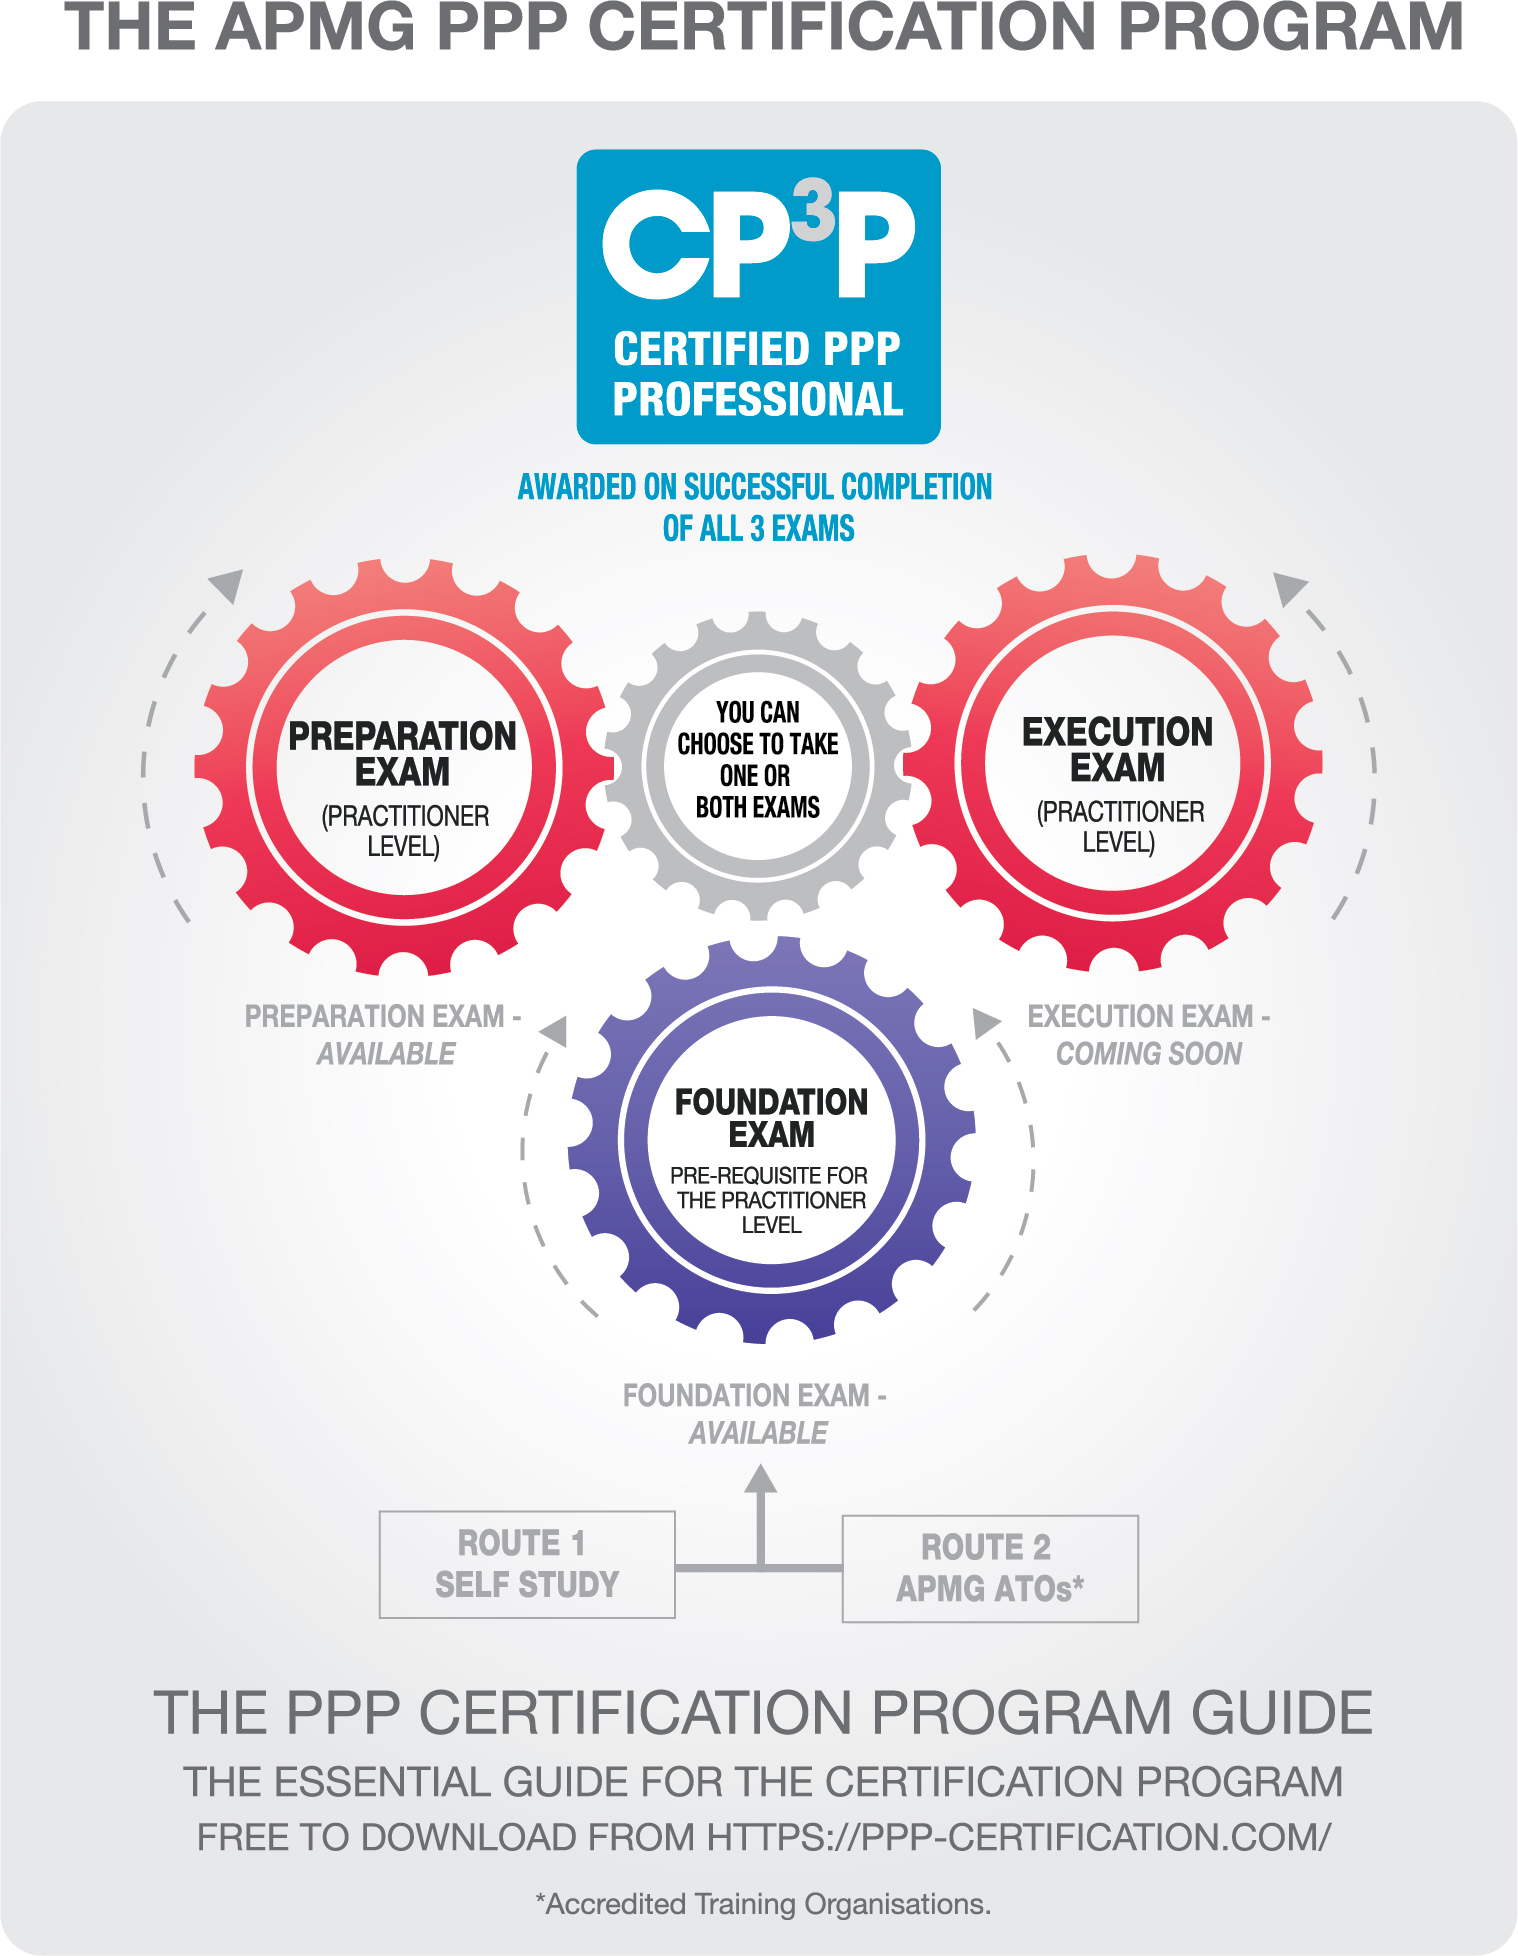 Elegant images of free it certifications business cards and resume certification from free it certifications image source ppp certification xflitez Image collections